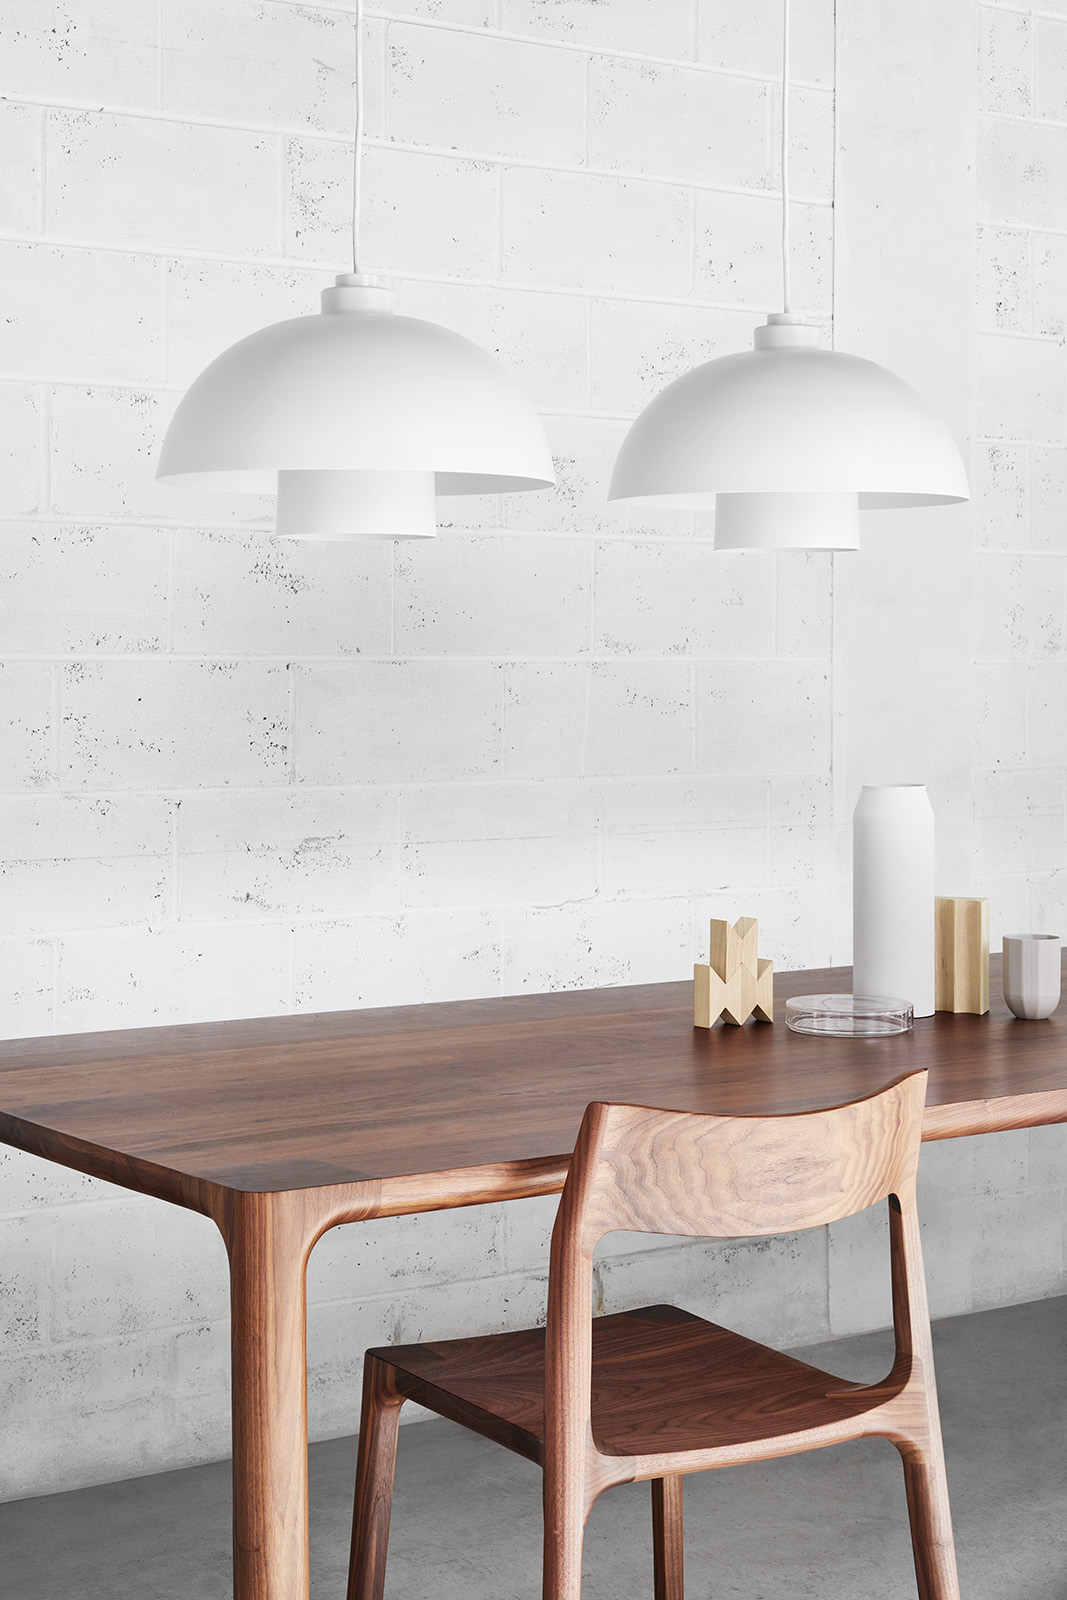 ... Cult is expanding into the production and manufacturing of Australian design through the launch of NAU. Encompassing furniture lighting and accessories ... & Cult launches its own Australian furniture brand NAU | Australian ...